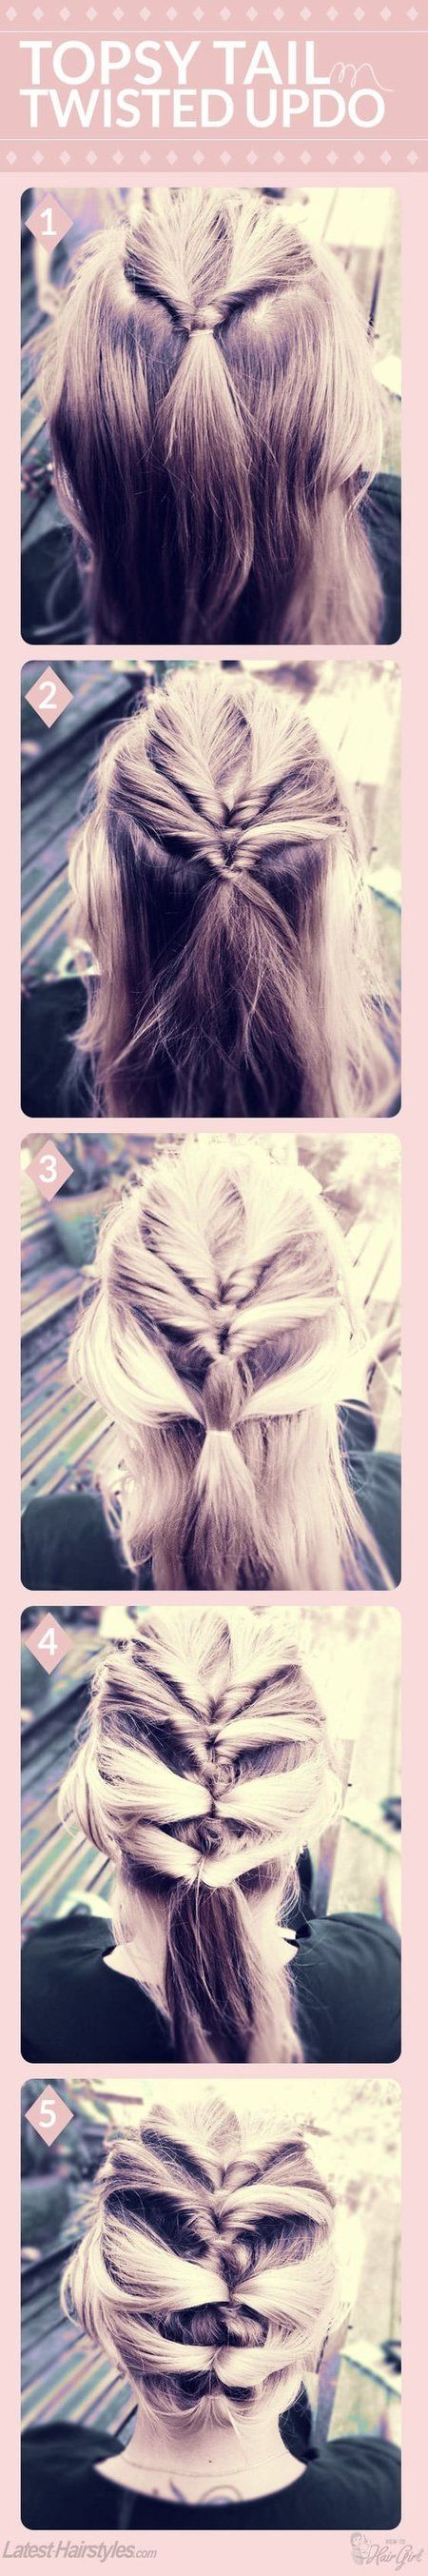 10 Sassy Hair tutorials to Try - #hairtutorial #topstail #hairstyles #latesthairstyles #prettydesigns